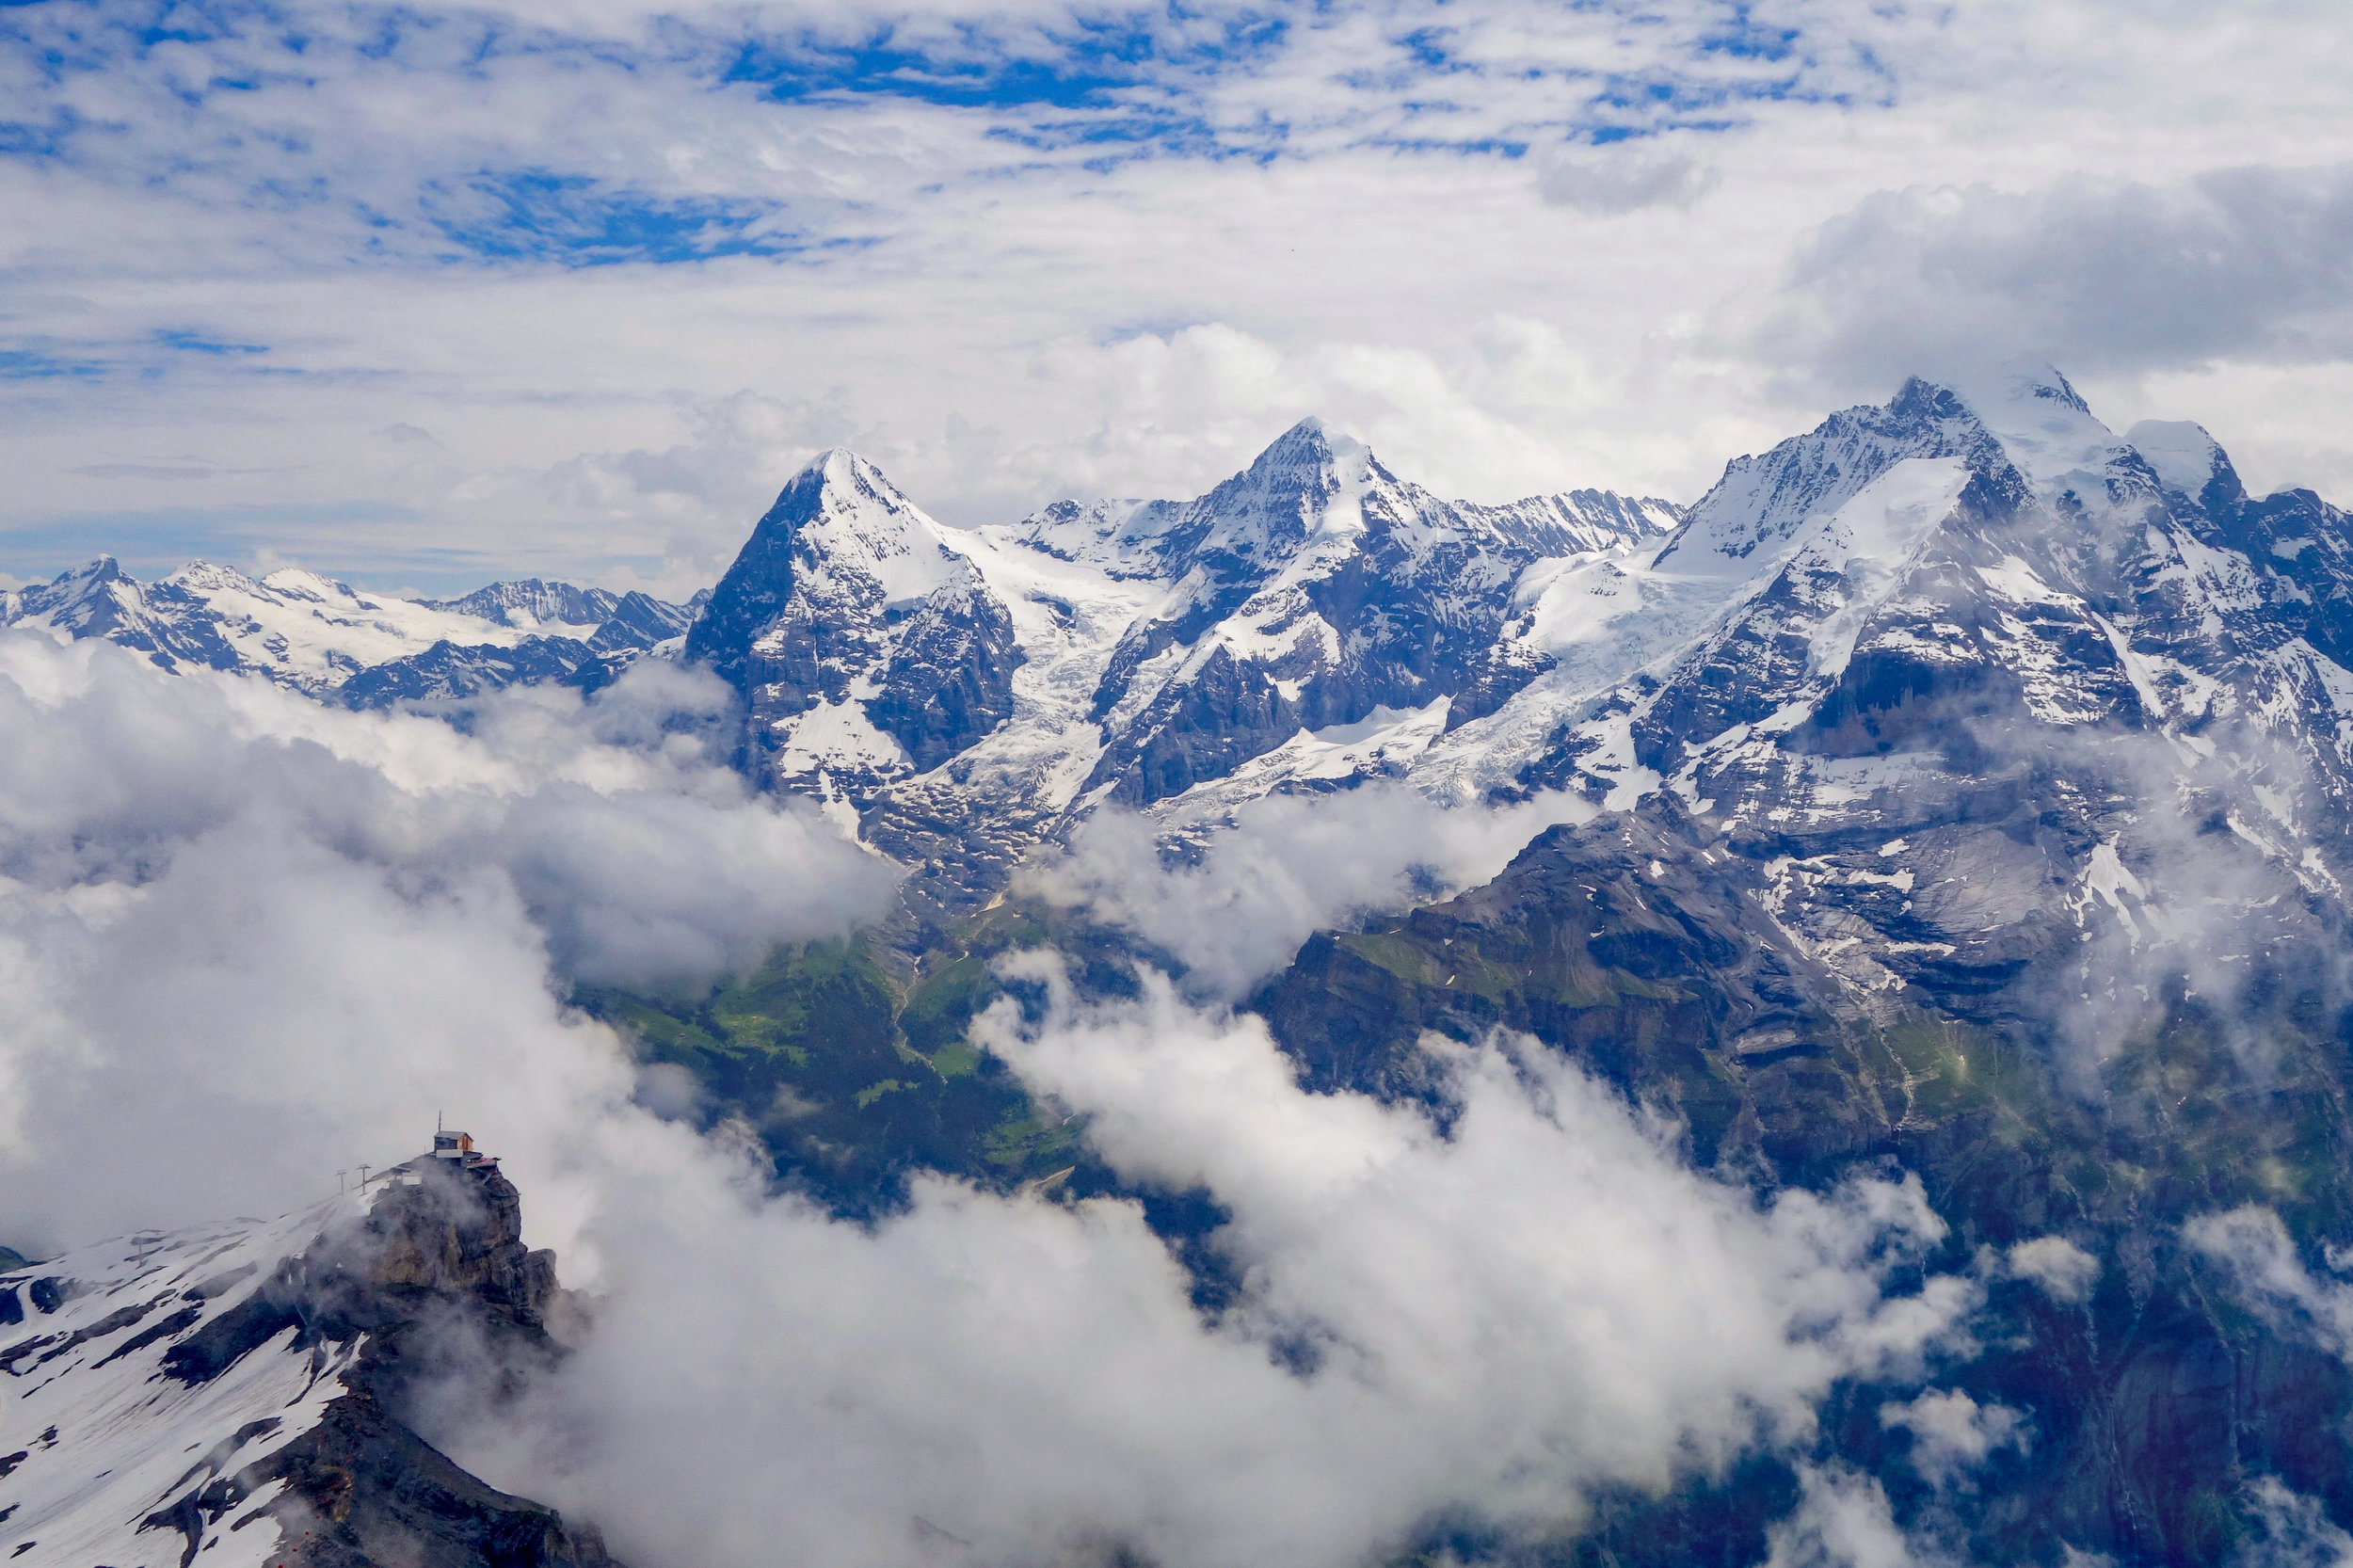 View of the Eiger, Mönch, and Jungfrau from the top of Schilthorn, with the mid-station stop of Birg in the foreground.